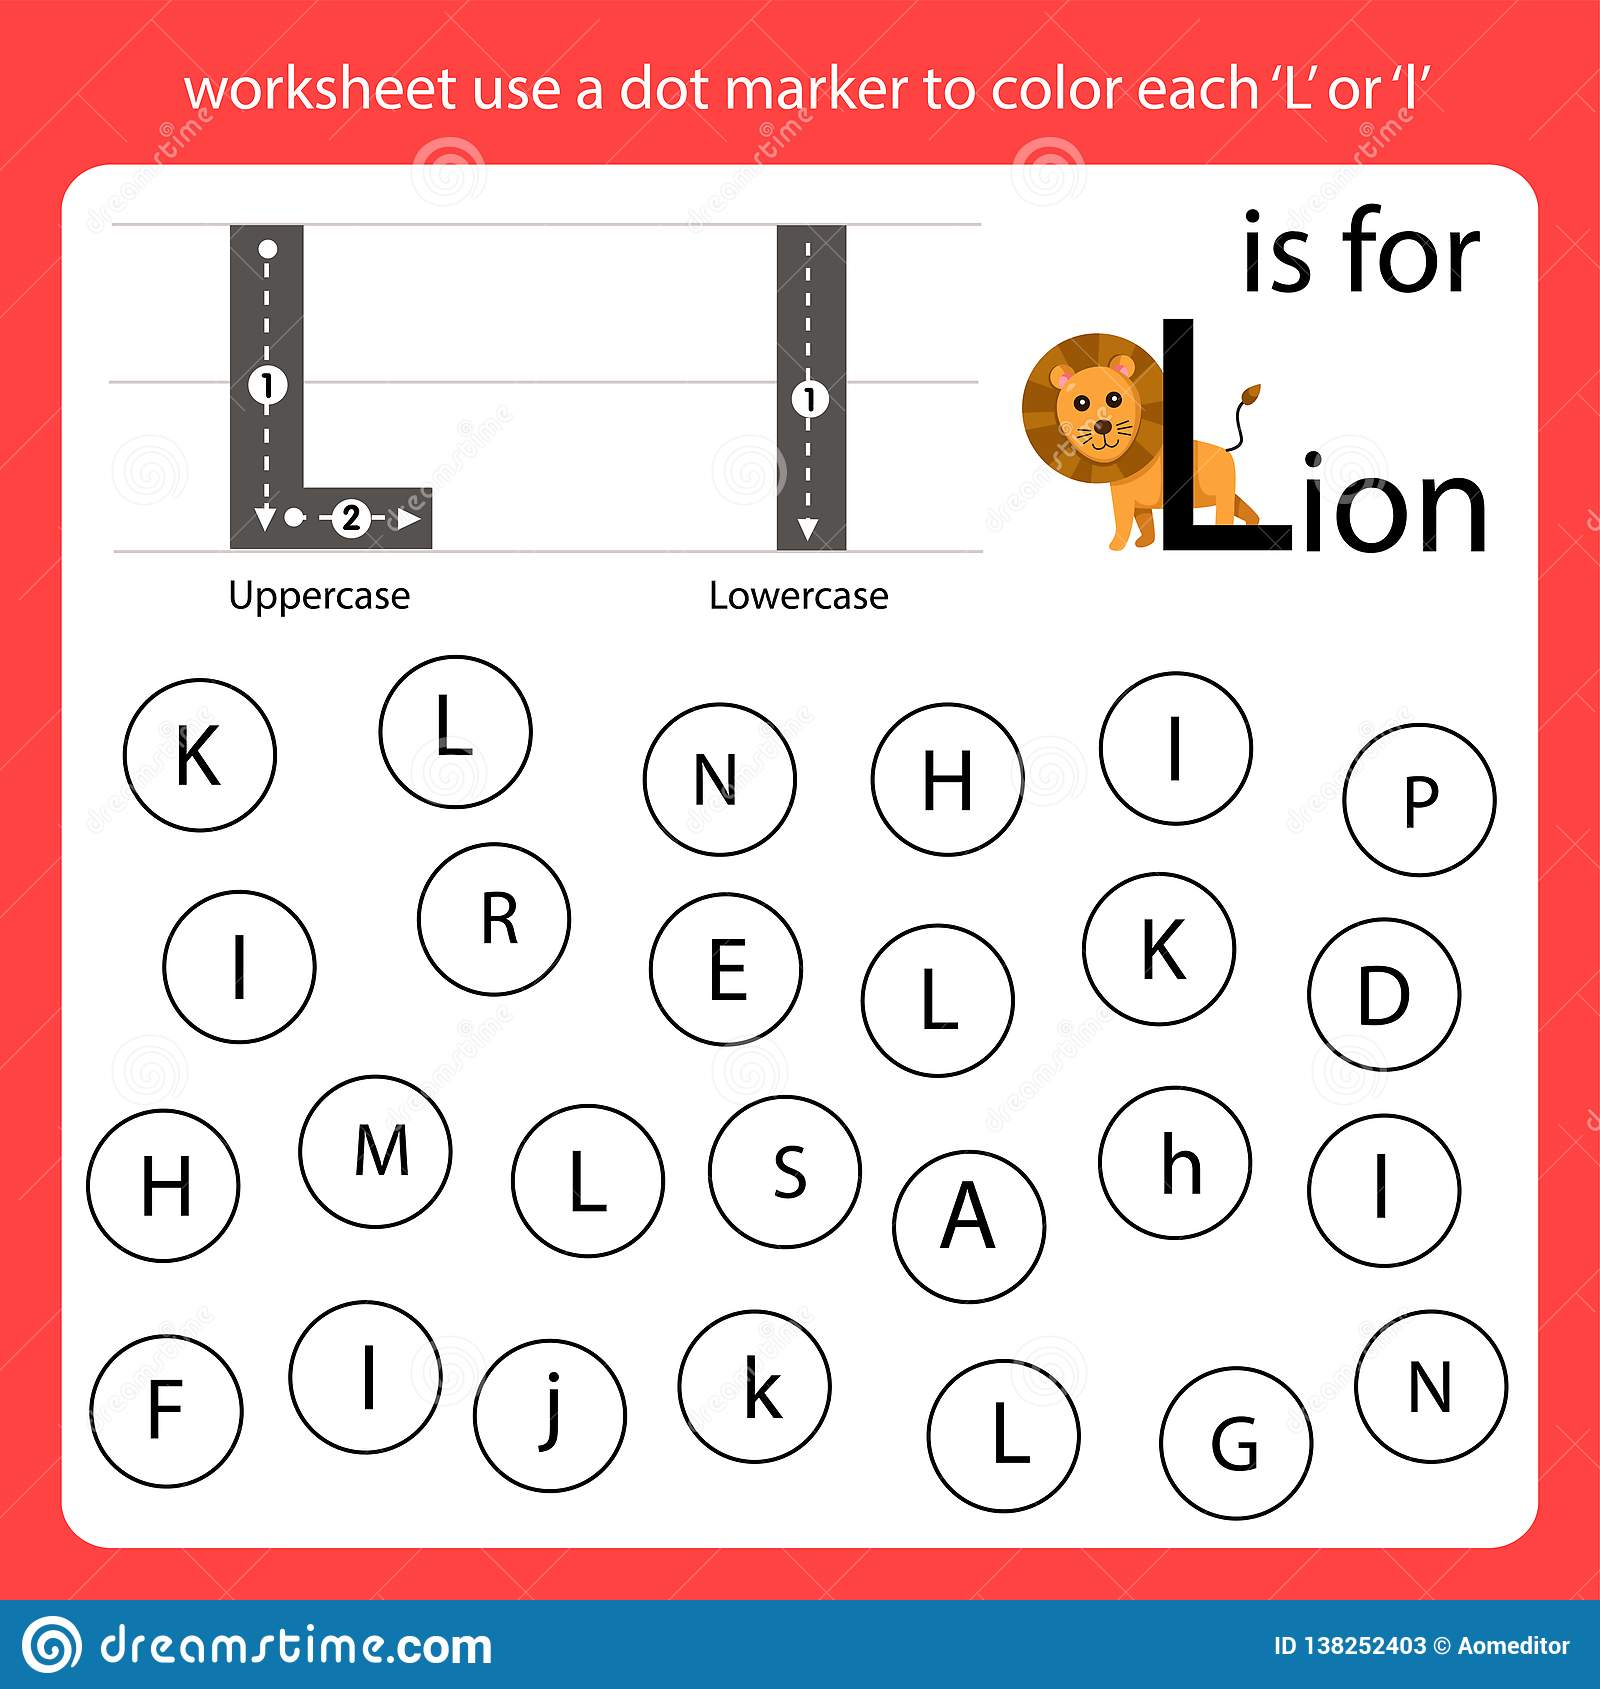 Find The Letter Worksheet Use A Dot Marker To Color Each L